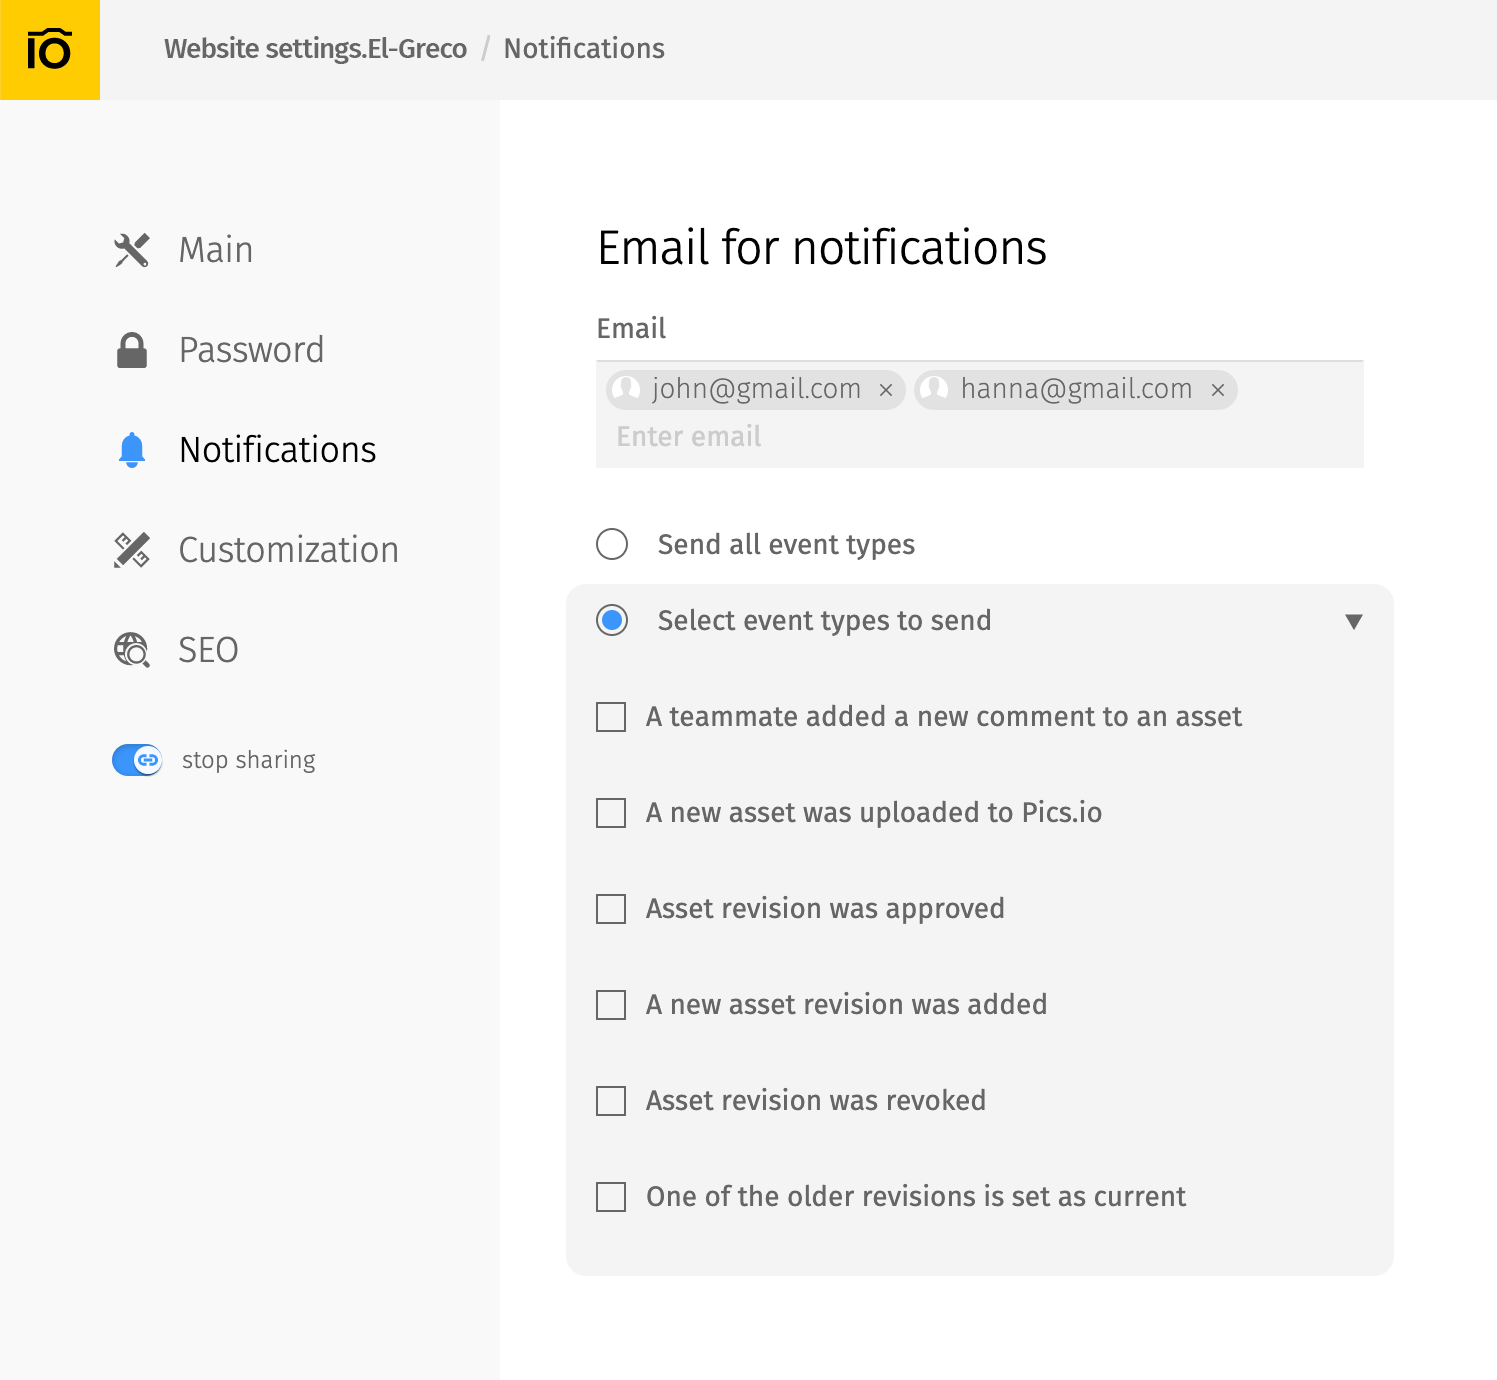 Email for notifications